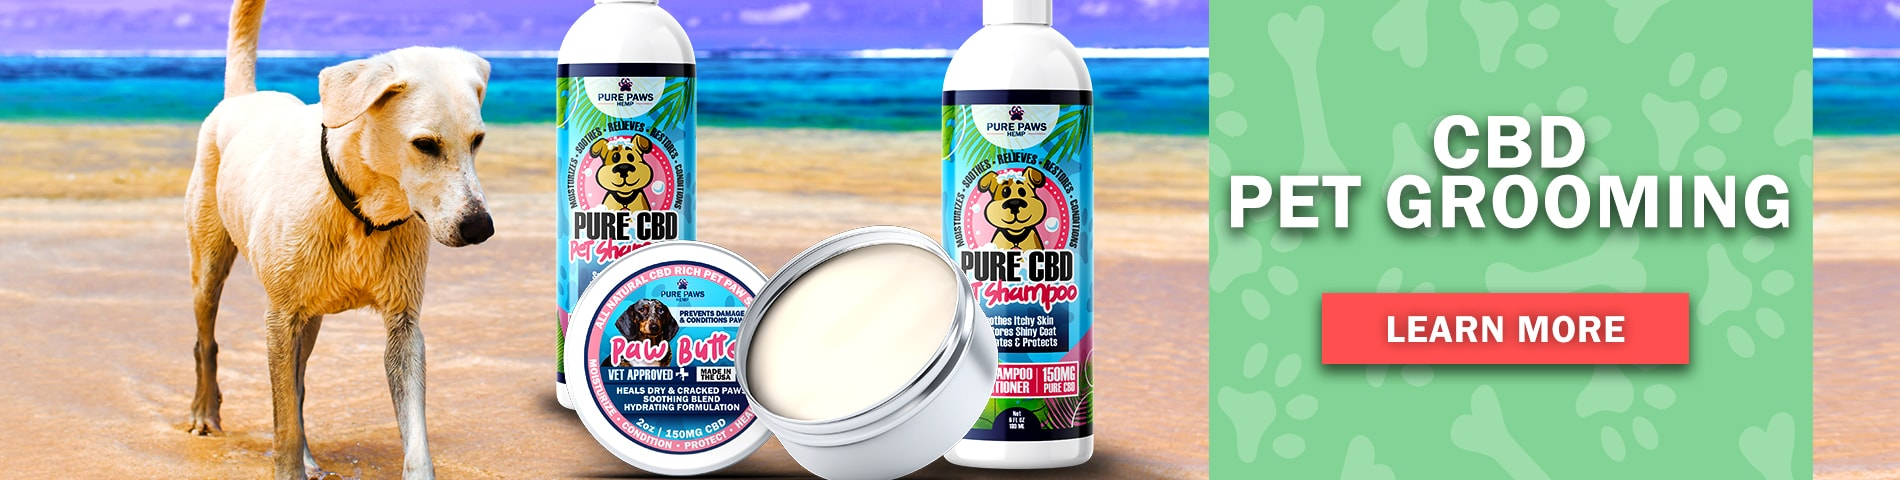 cbd pet grooming products shampoo and paw butter